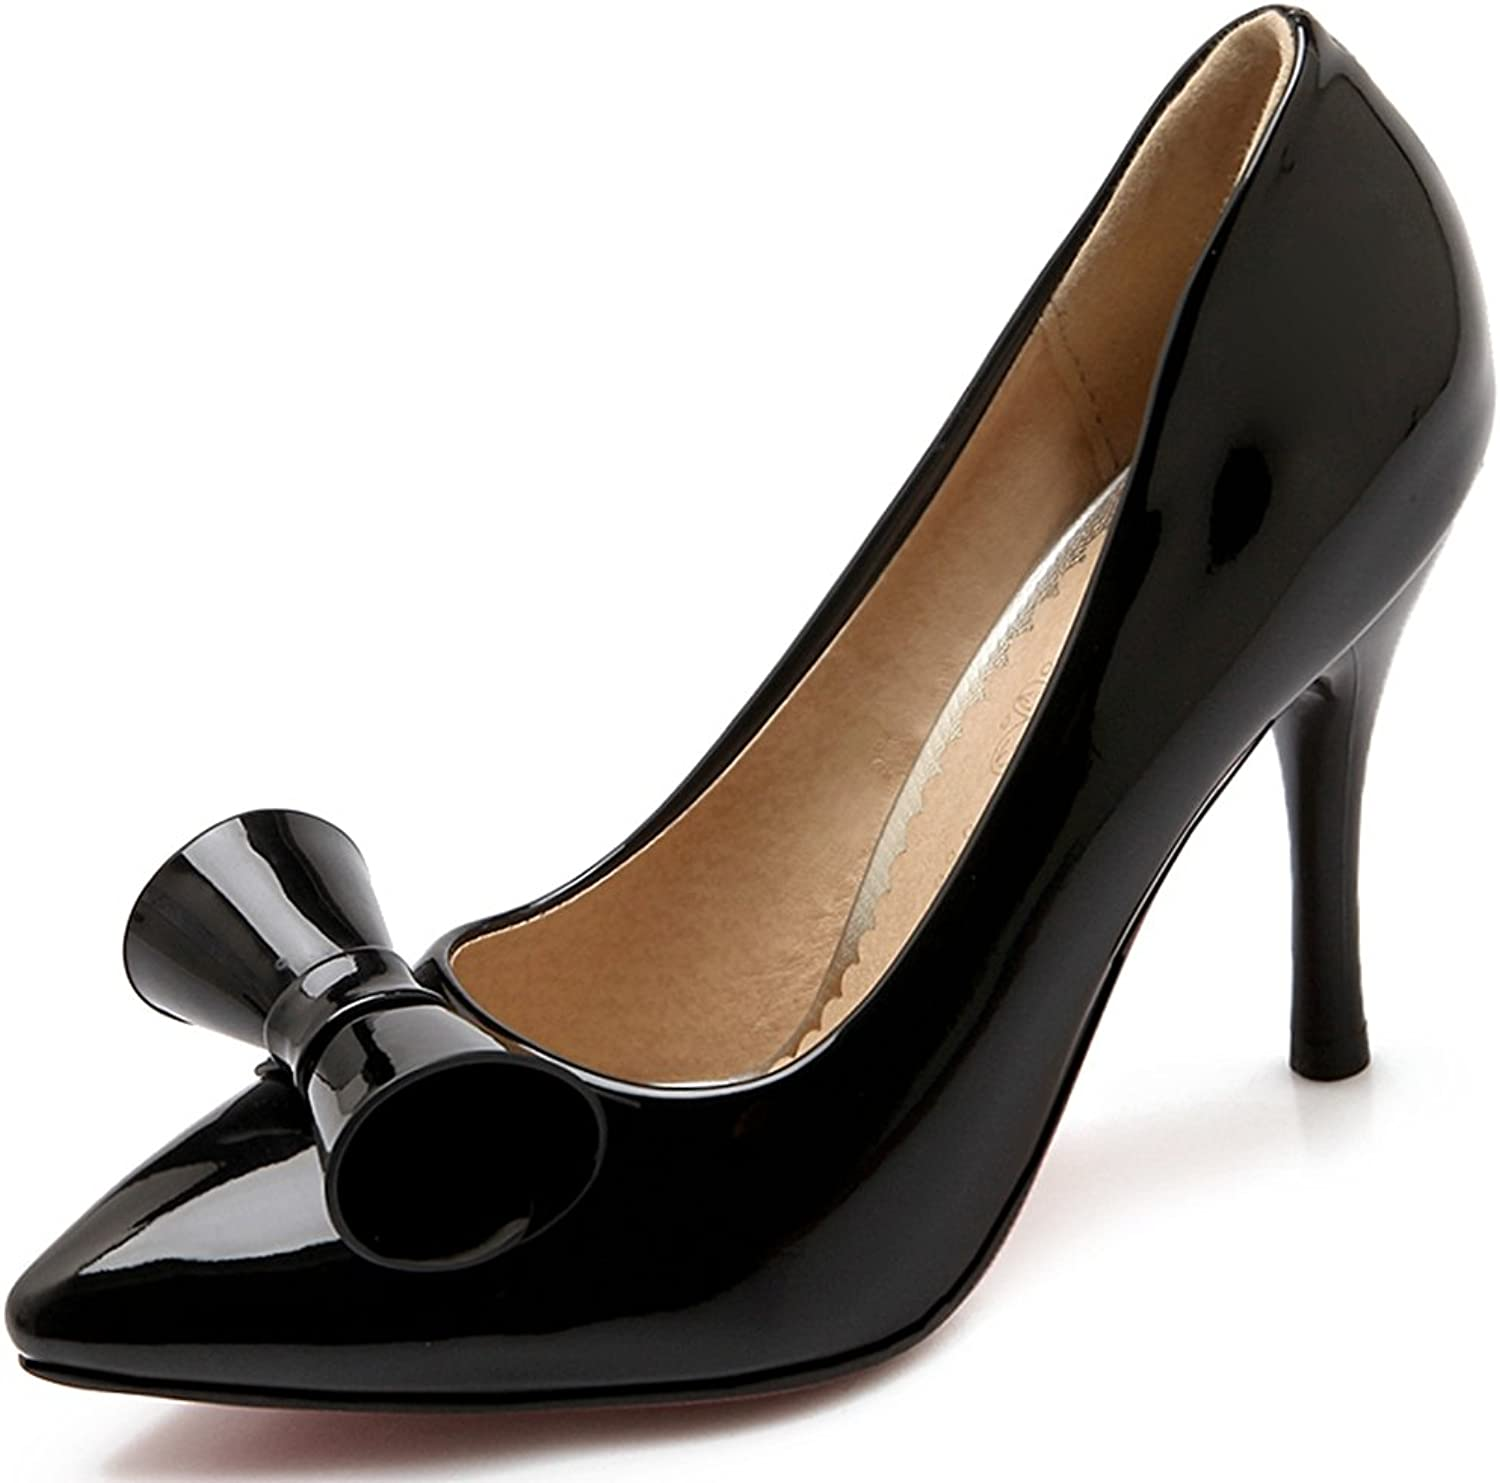 KingRover Women's Trendy Pointed Toe High Heel Stilettos Patent Leather Pumps with Bow Size 4-10.5 US